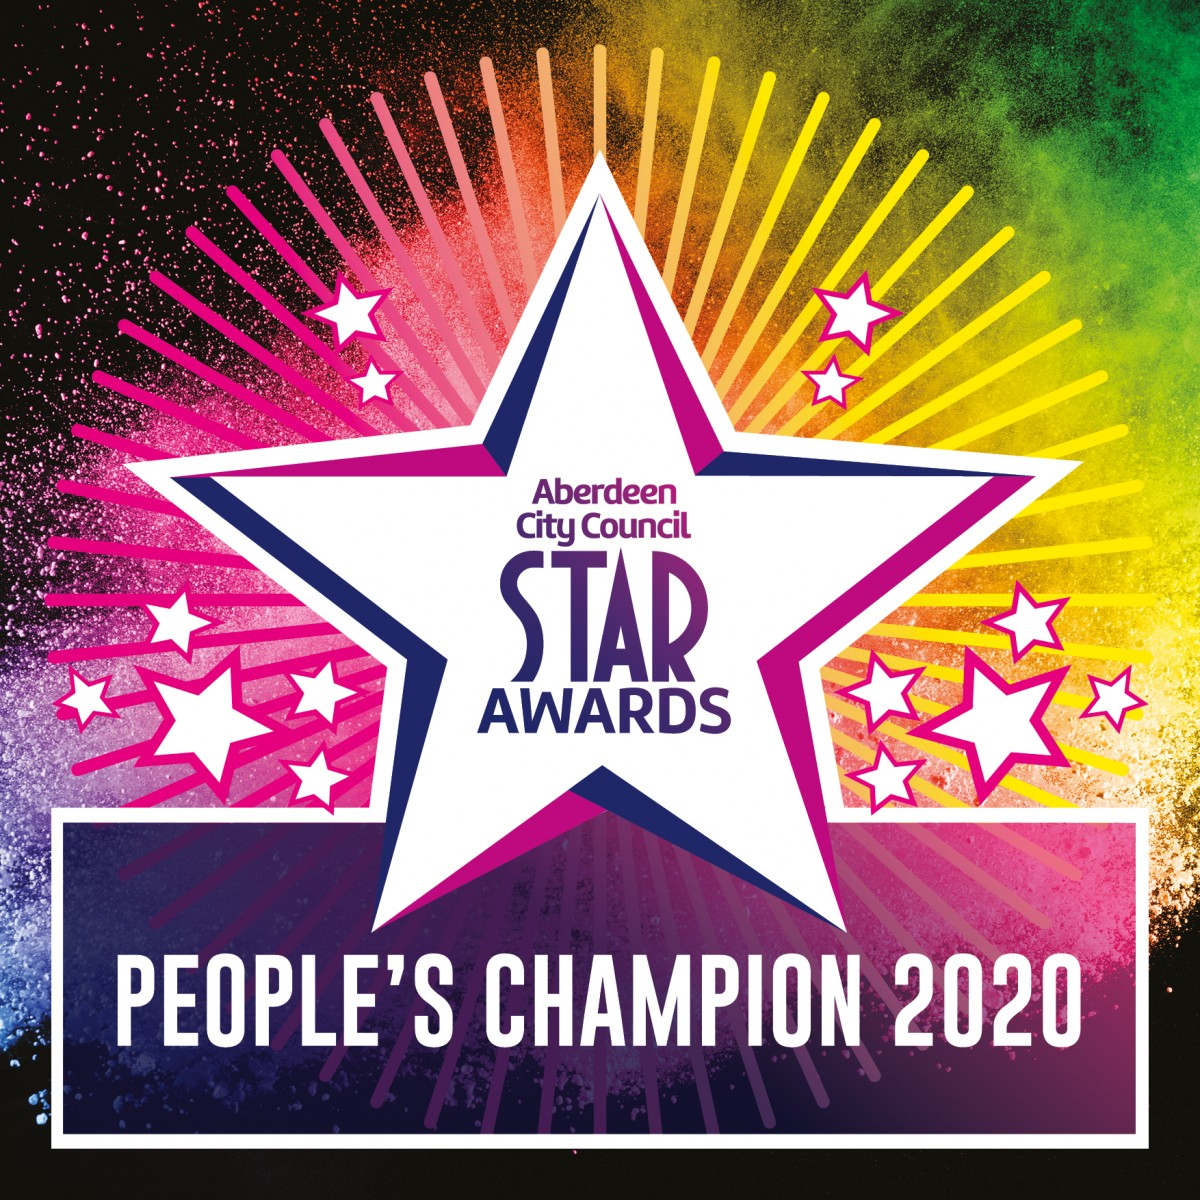 star_awards_peoples_champ